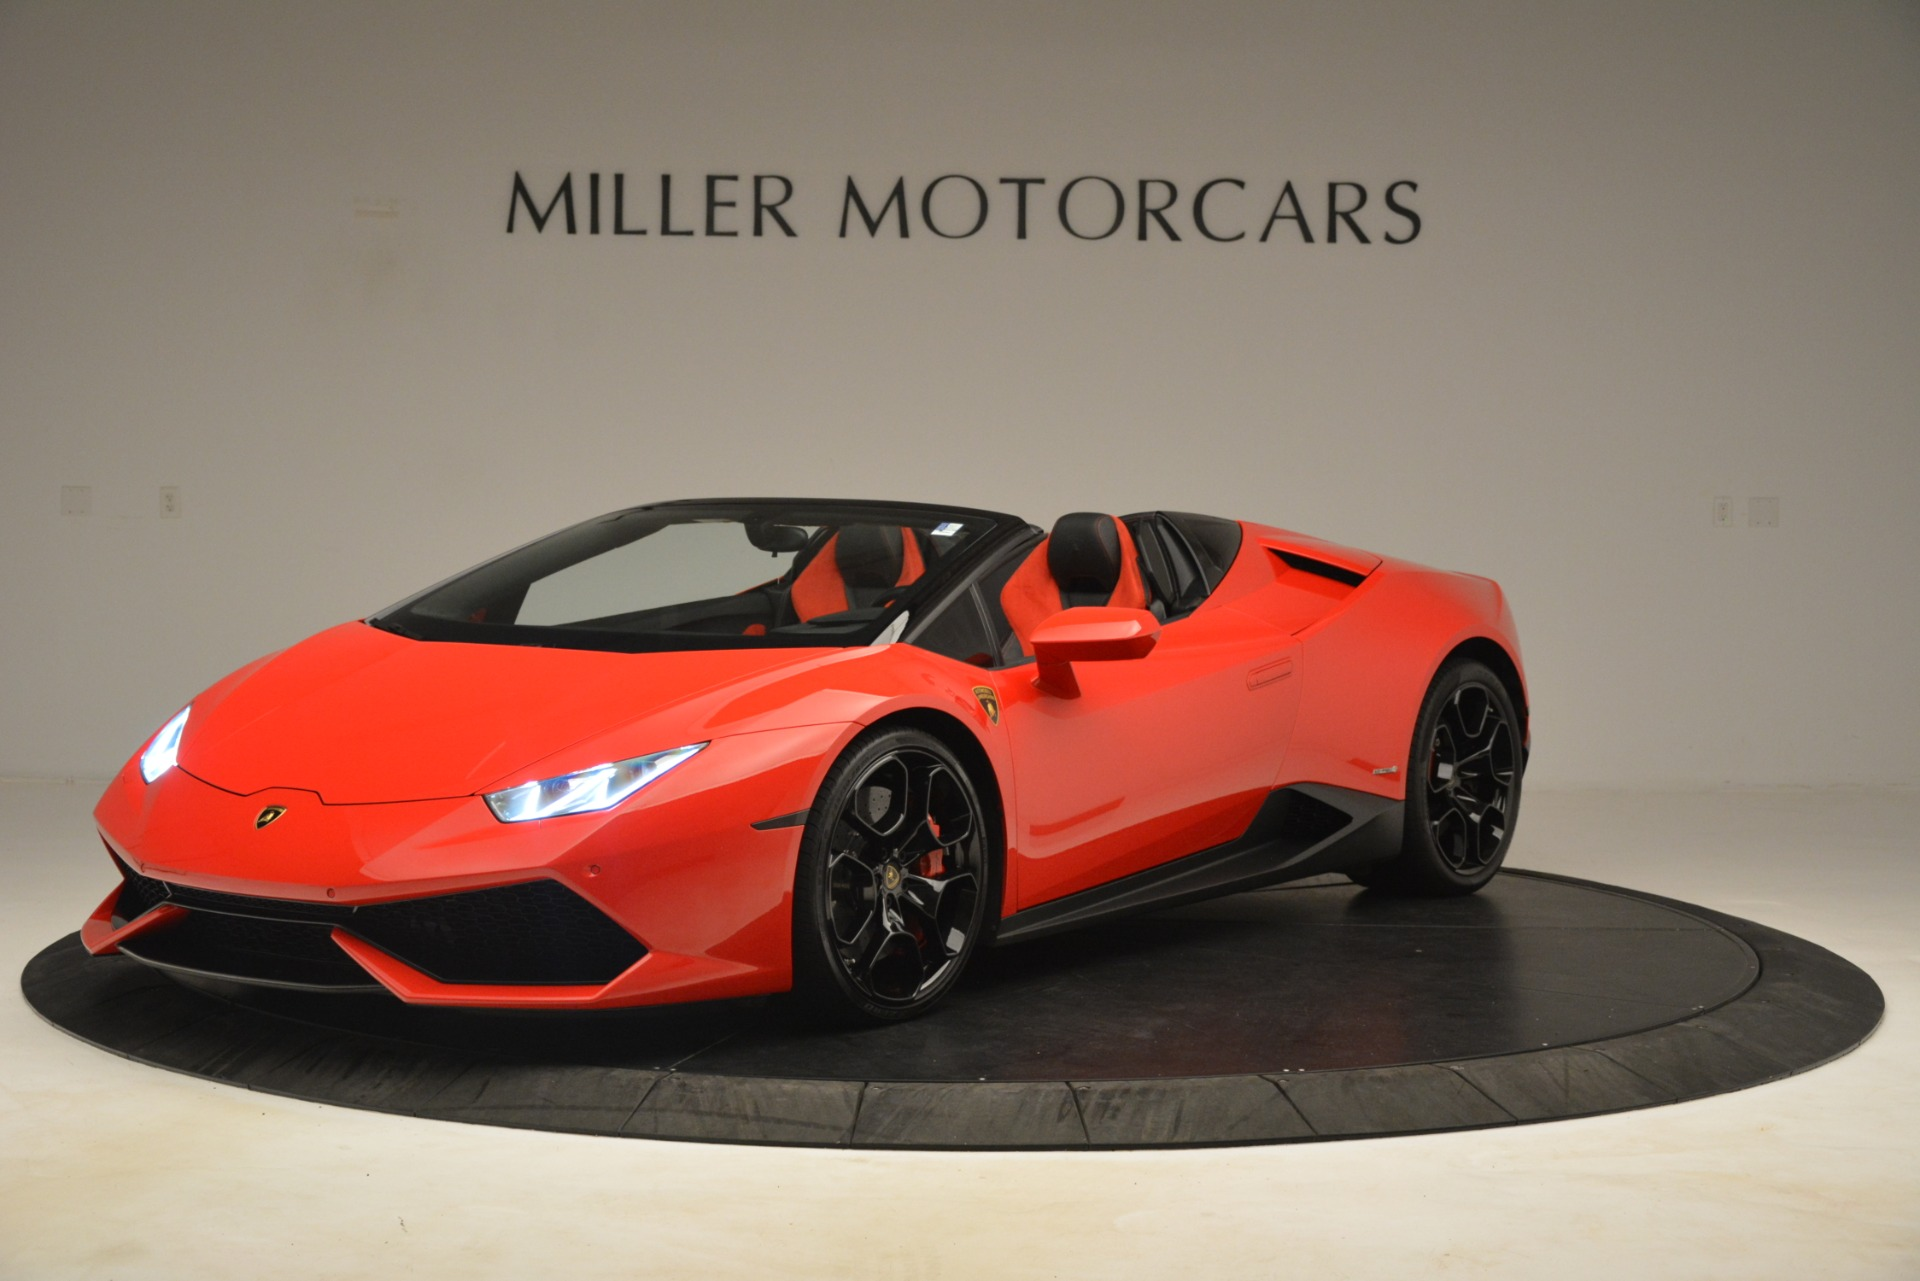 Used 2017 Lamborghini Huracan LP 610-4 Spyder for sale Sold at Pagani of Greenwich in Greenwich CT 06830 1